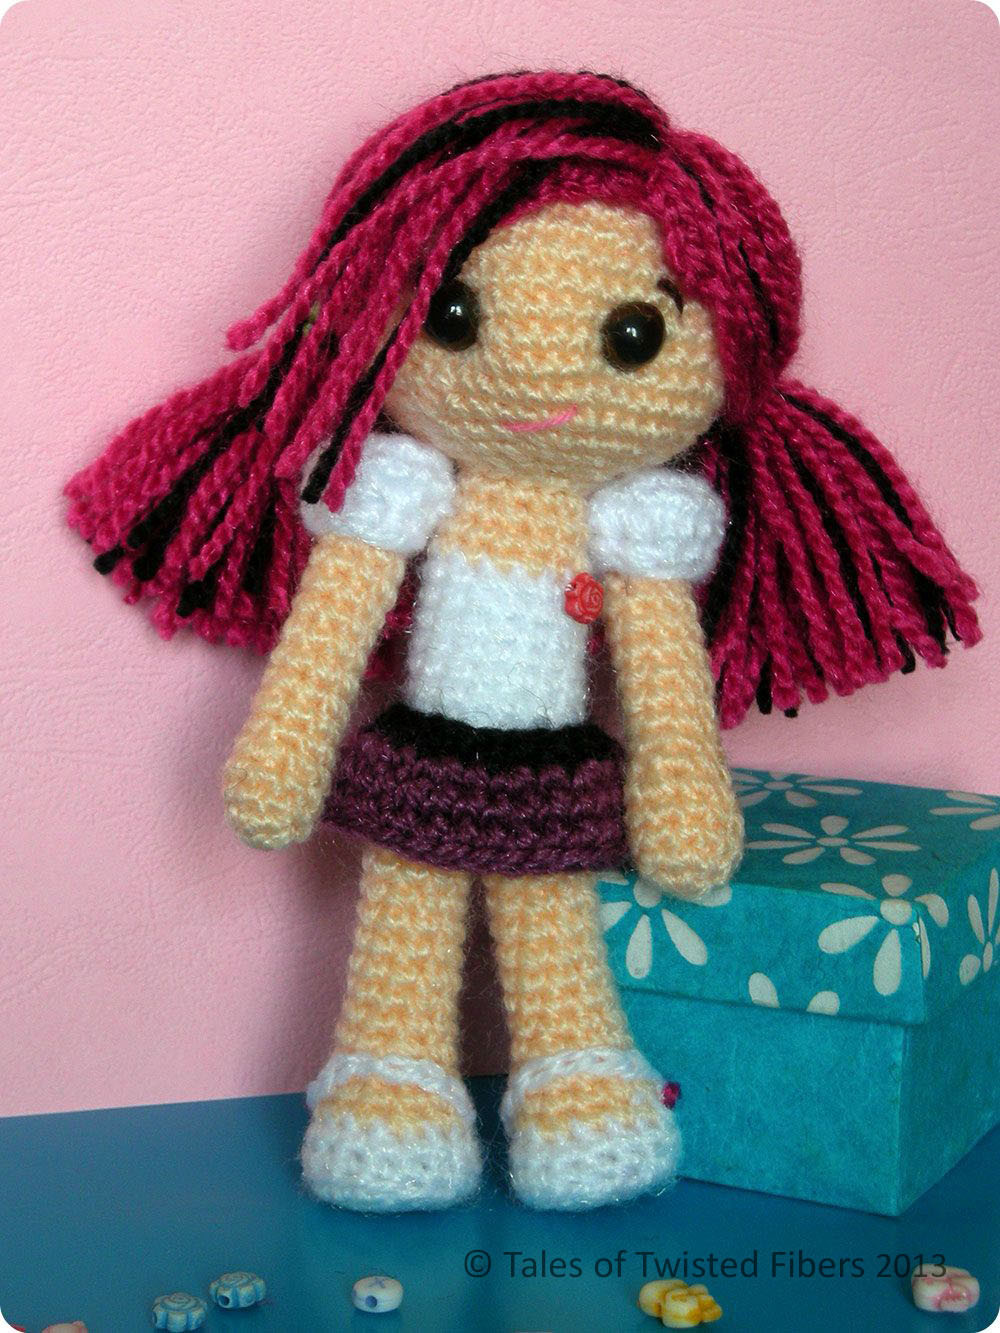 Doll Patterns Beautiful Amy the Amigurumi Doll Free Pattern – Tales Of Twisted Fibers Of Doll Patterns Best Of Gingermelon Dolls My Felt Doll Knitted Outfit Patterns